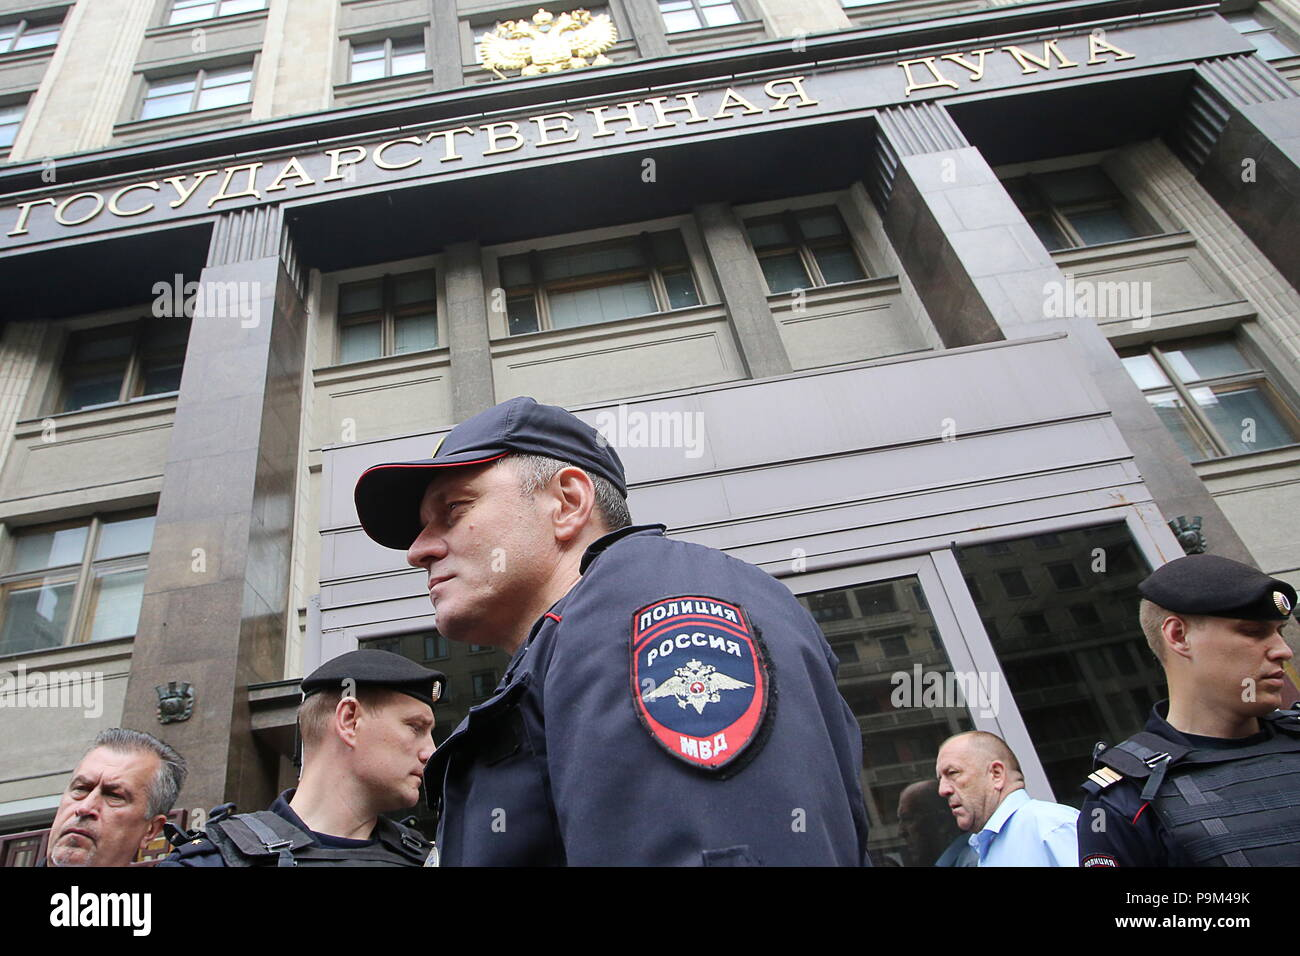 Moscow, Russia. 19th July, 2018. MOSCOW, RUSSIA - JULY 19, 2018: Police officers seen during a rally outside the building of the Russian State Duma ahead of the first reading of a draft law on raising the retirement age from 60 to 65 for men, and from 55 to 63 for women over a 15-year period. Vladimir Gerdo/TASS Credit: ITAR-TASS News Agency/Alamy Live News - Stock Image